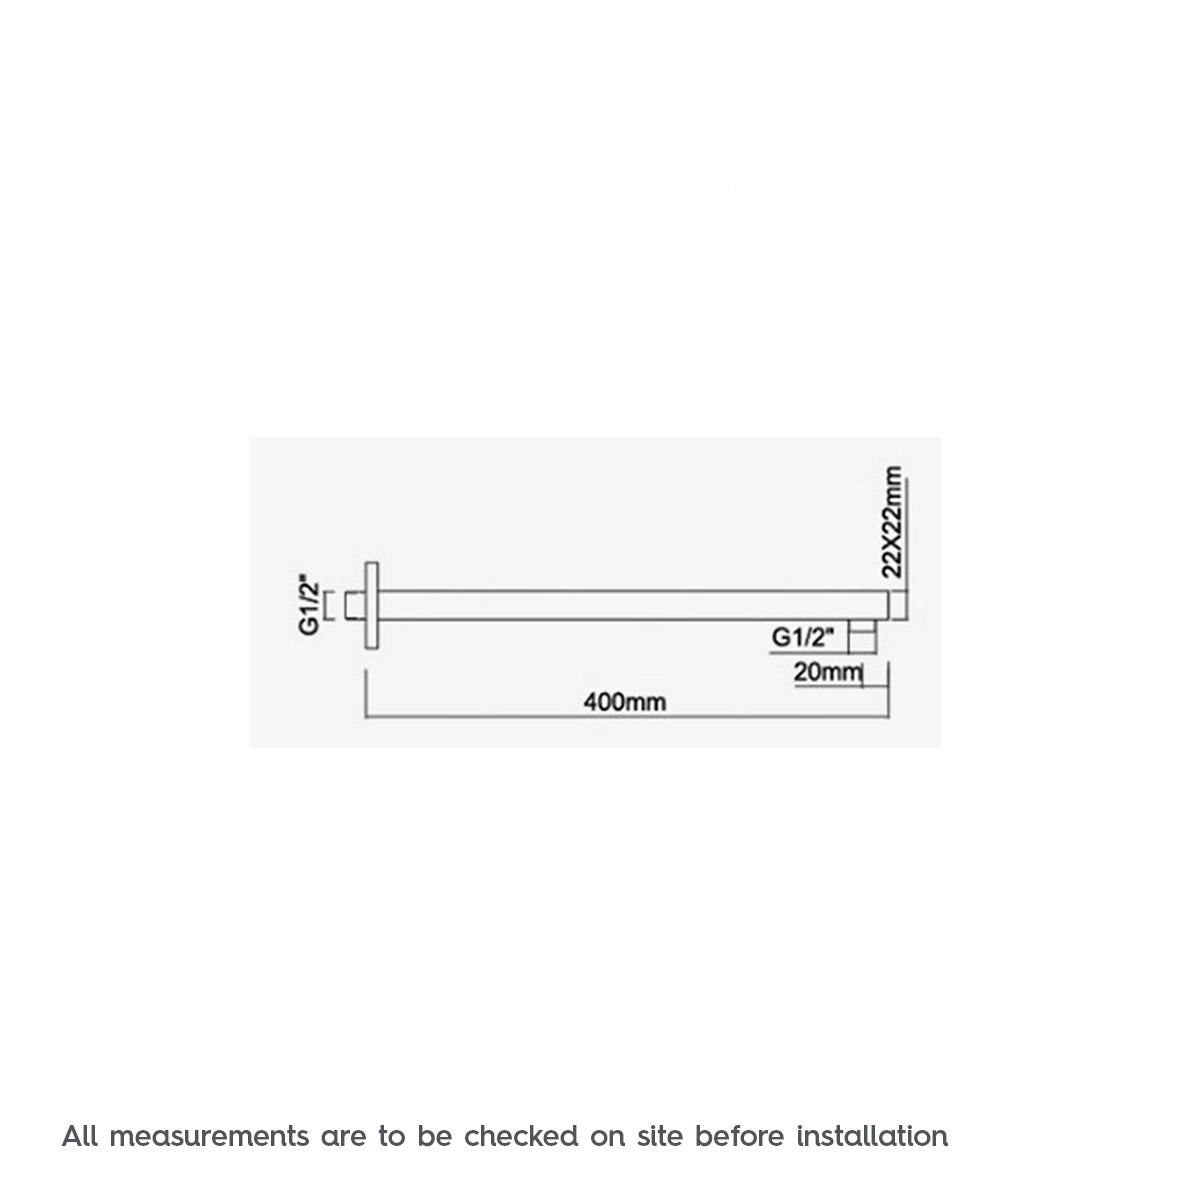 Dimensions for Mode Square wall shower arm 400mm